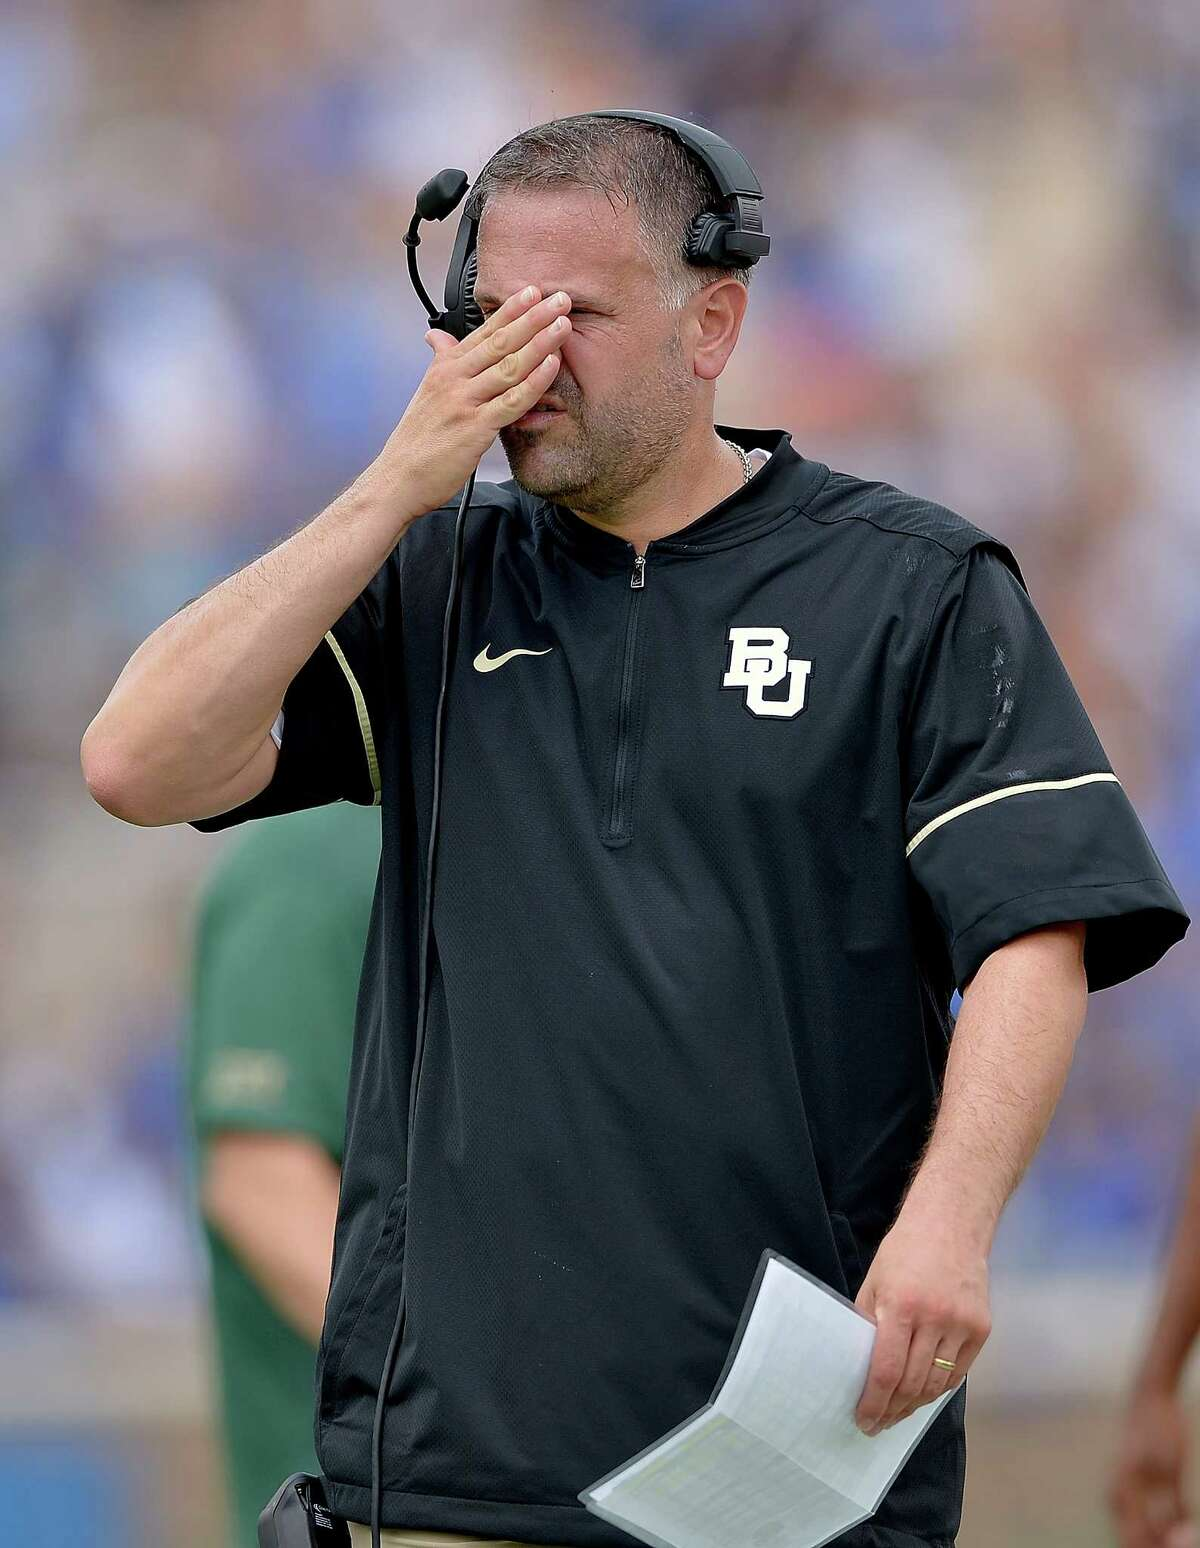 DURHAM, NC - SEPTEMBER 16: Head coach Matt Rhule of the Baylor Bears reacts during the game against the Duke Blue Devils at Wallace Wade Stadium on September 16, 2017 in Durham, North Carolina.